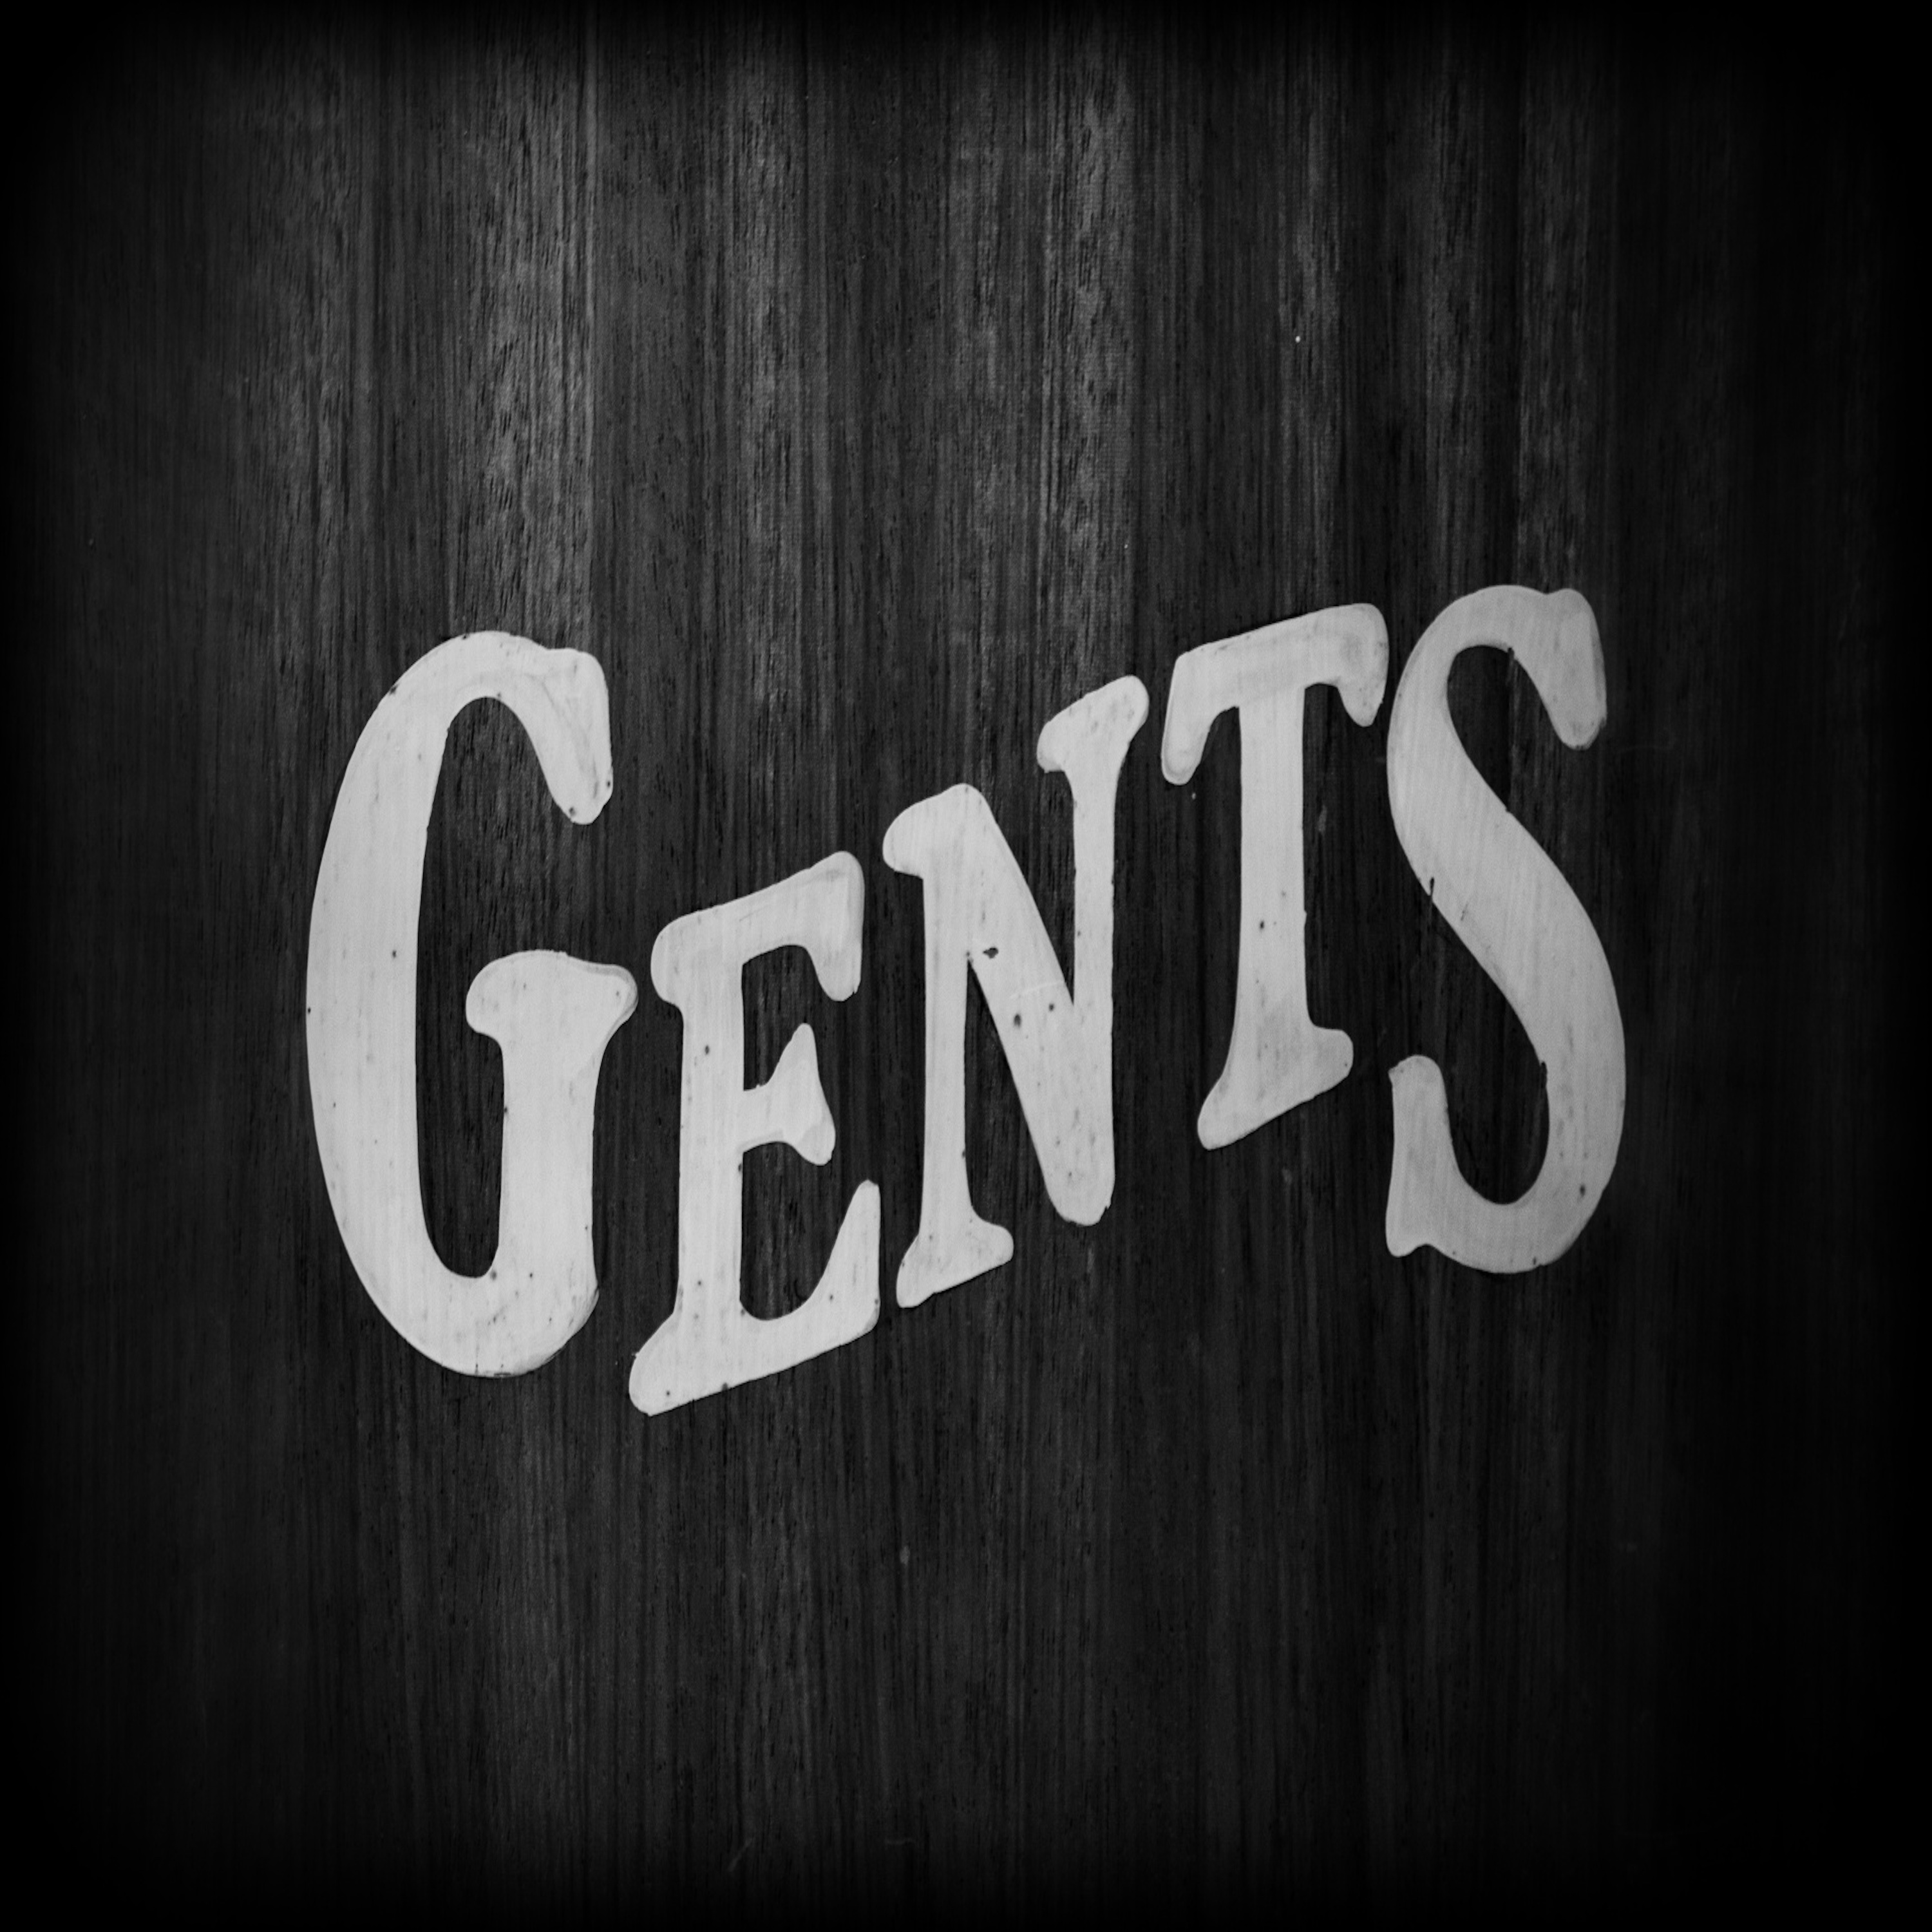 The Gents Club Podcast